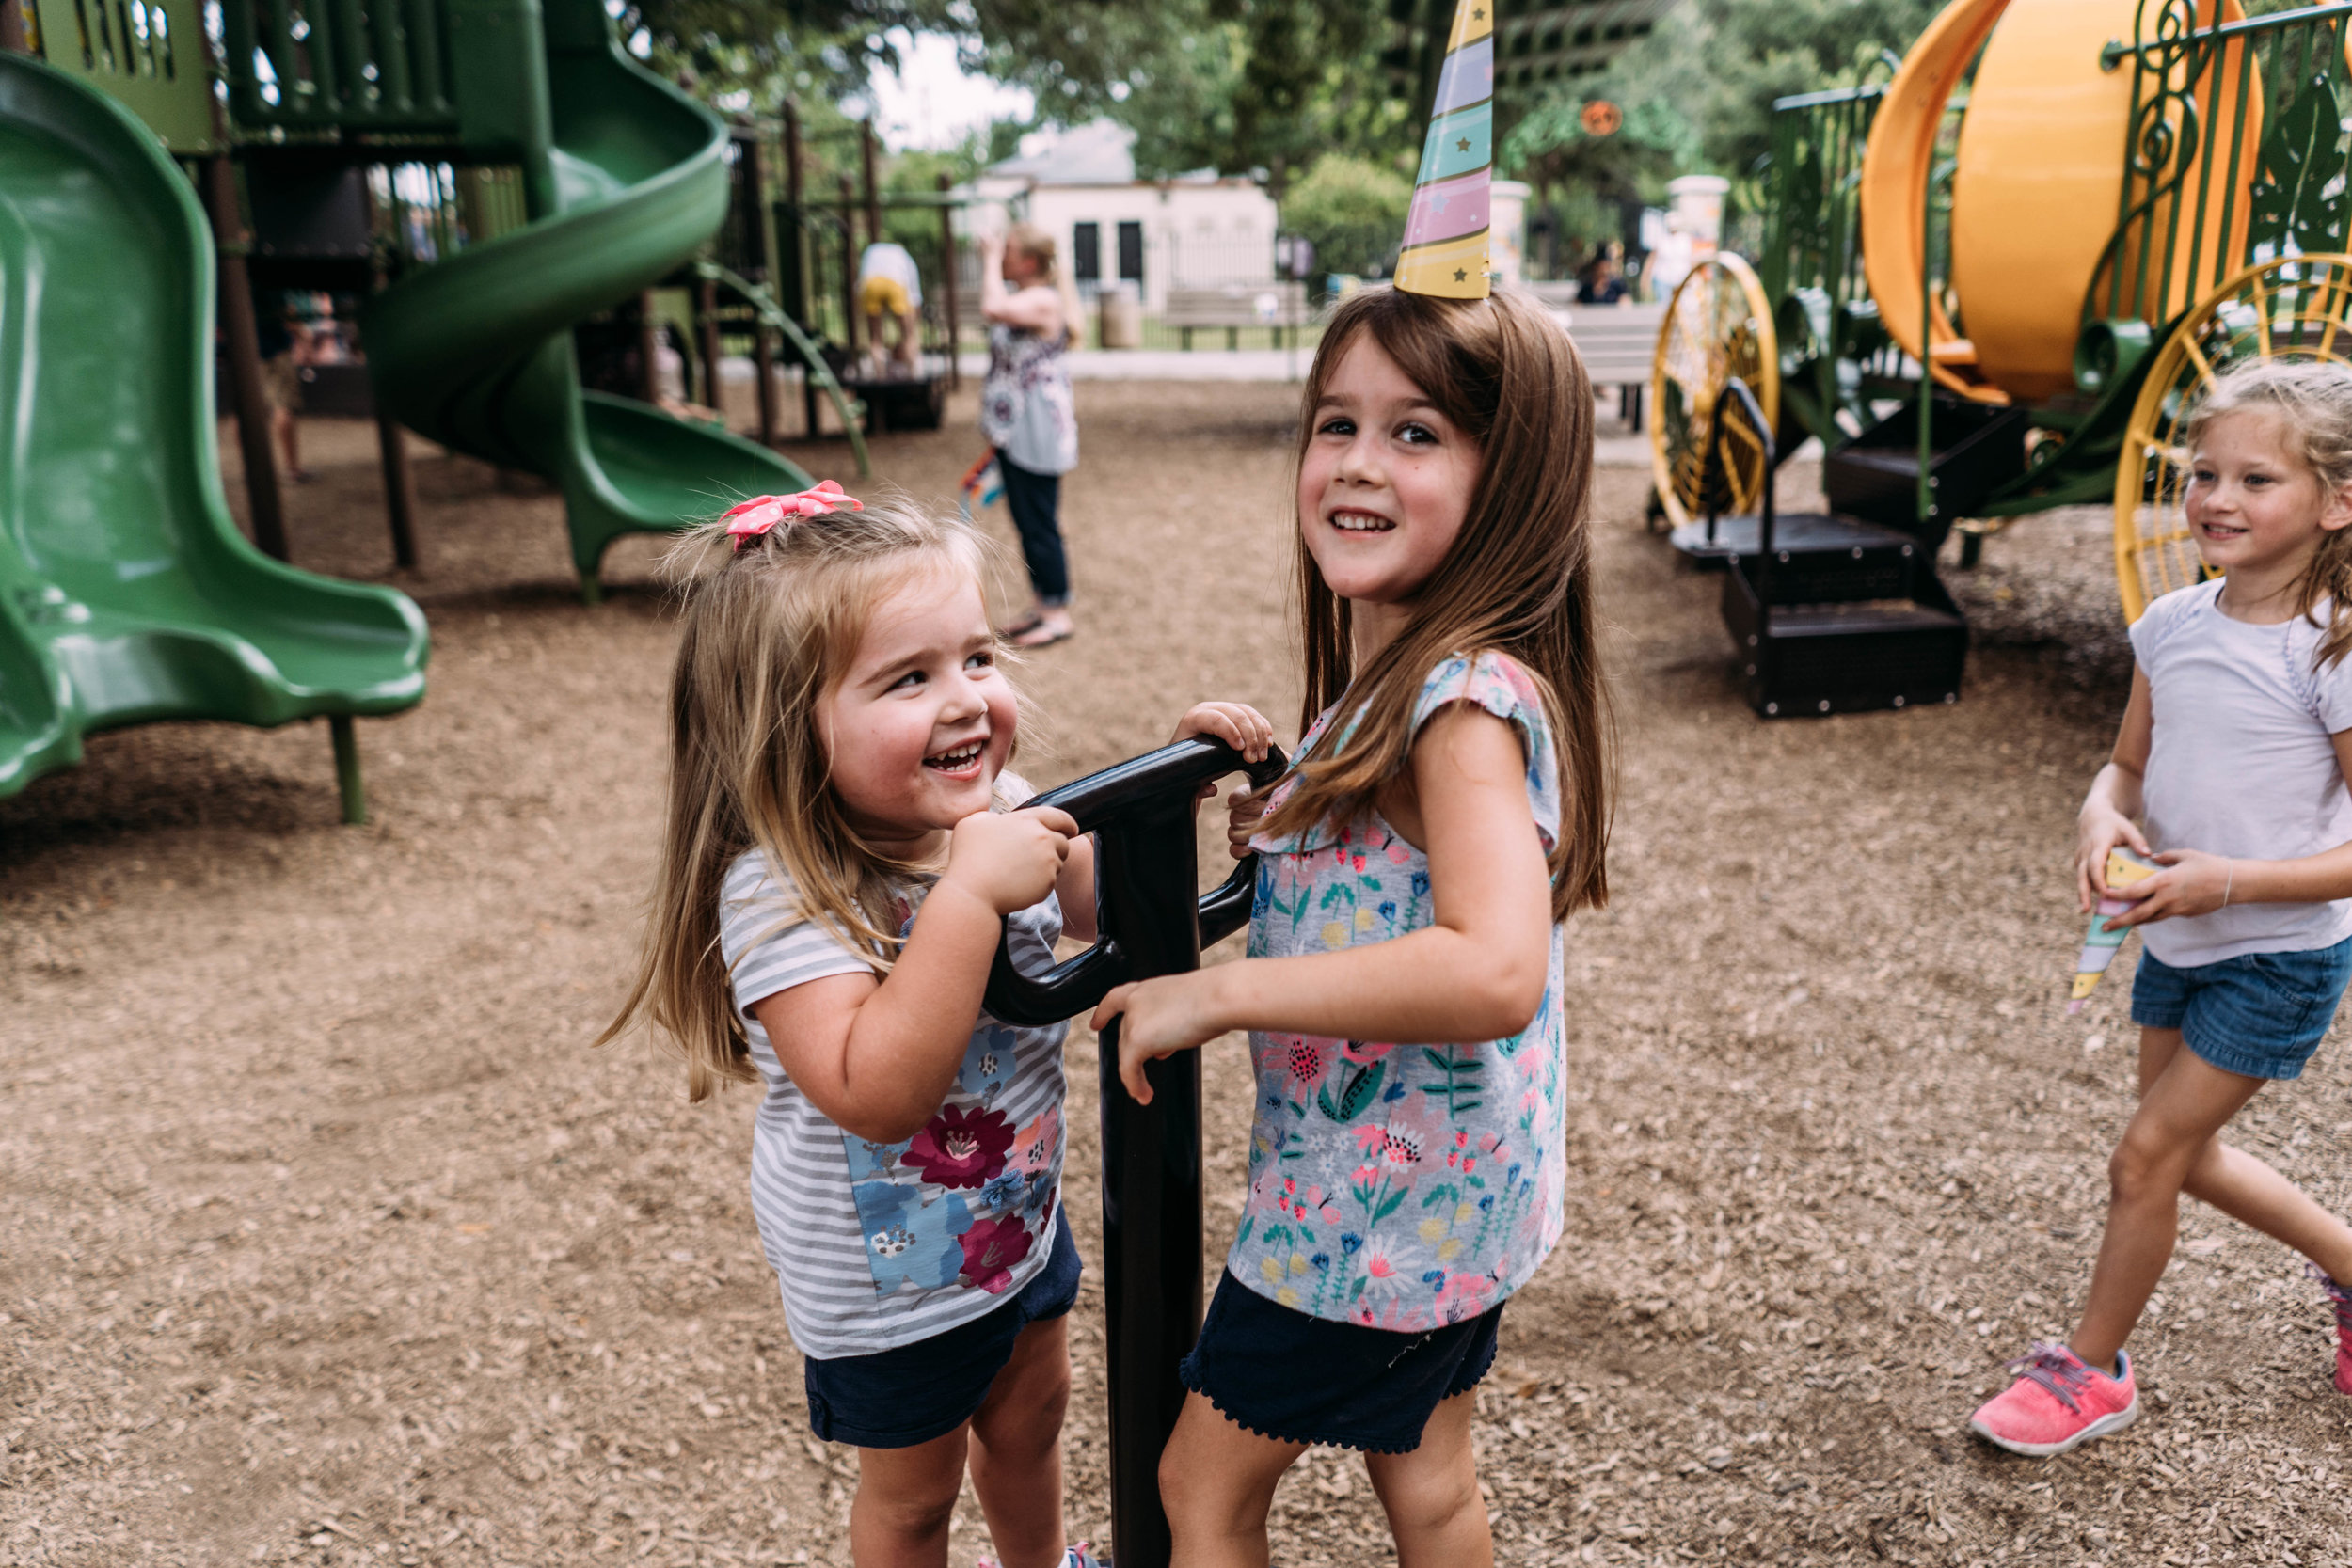 birthday party at the park-35.jpg